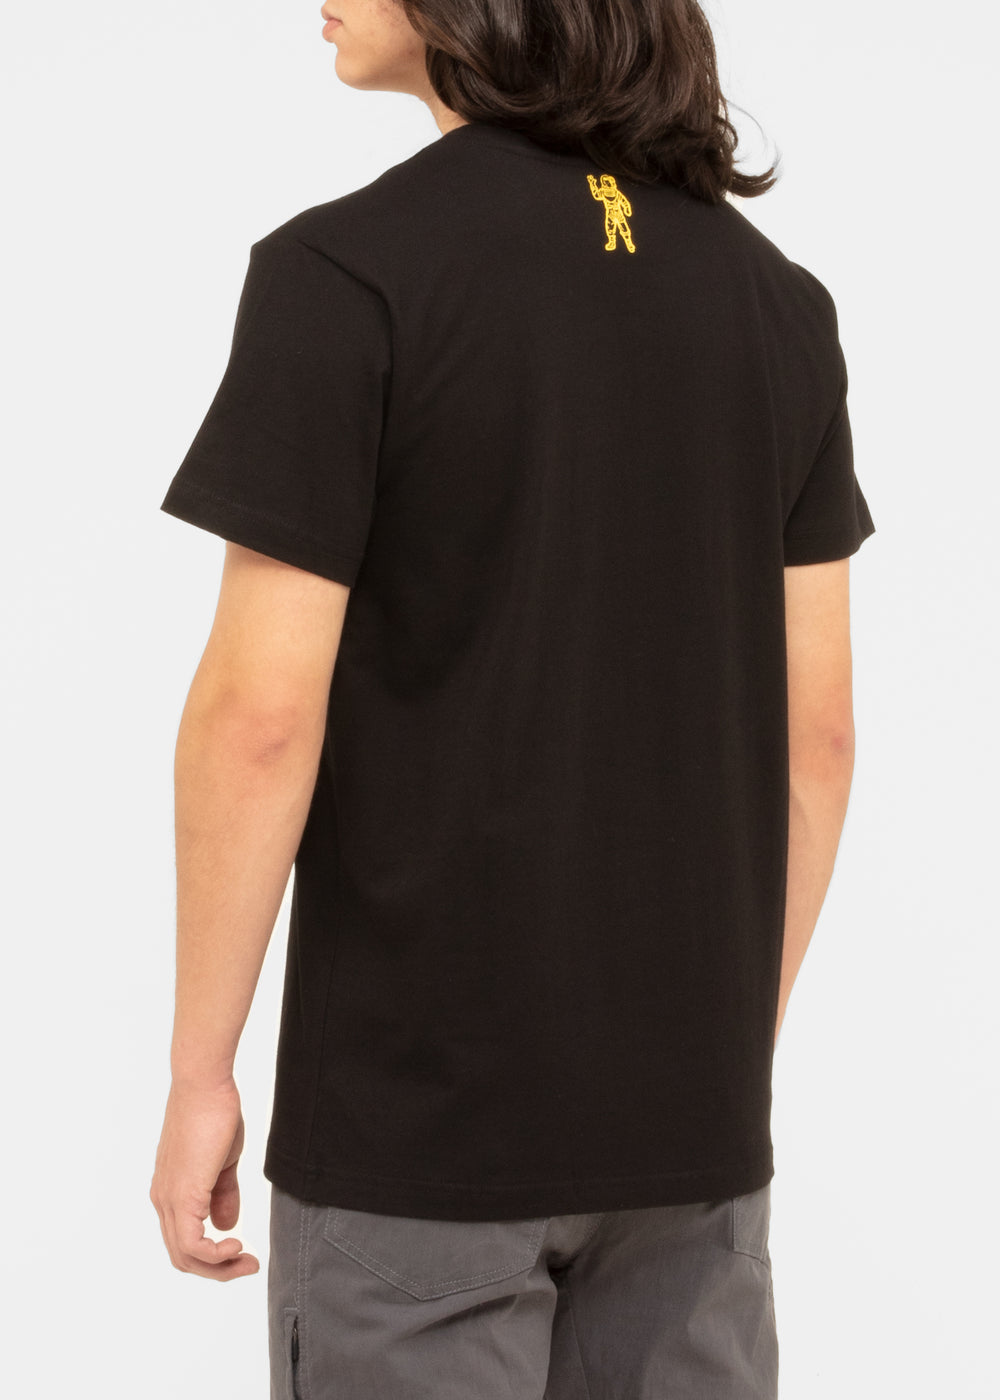 billionaire-boys-club-recovery-ss-tee-891-7205-blk-blk-3